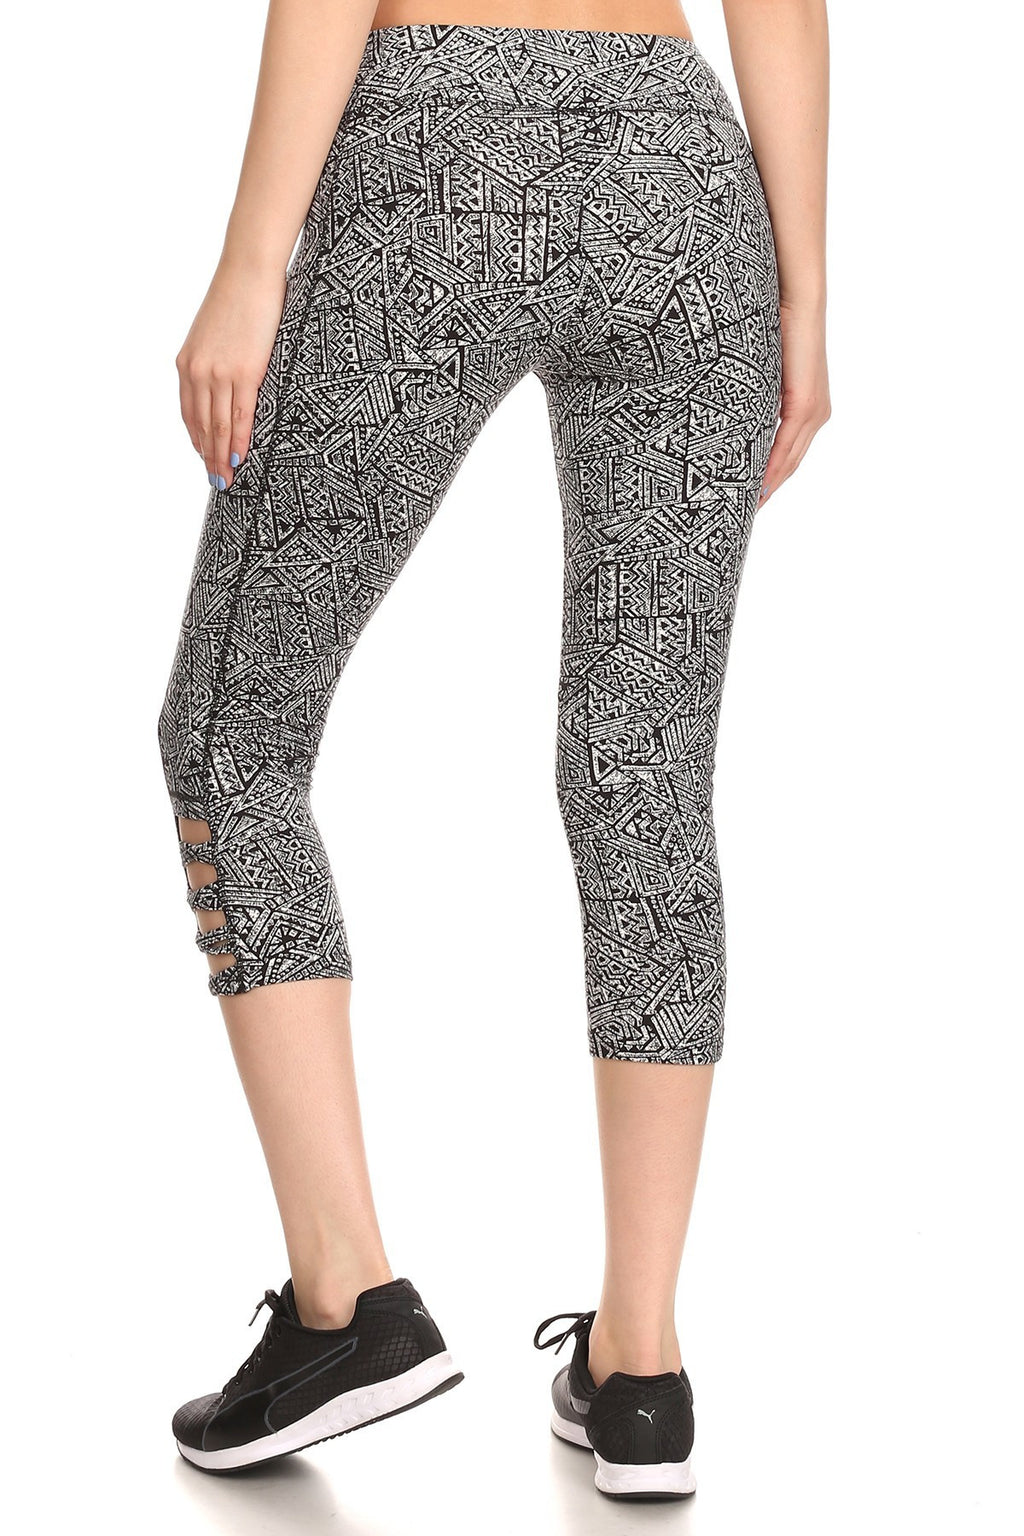 Super Soft Aztec Tribal Print Leggings